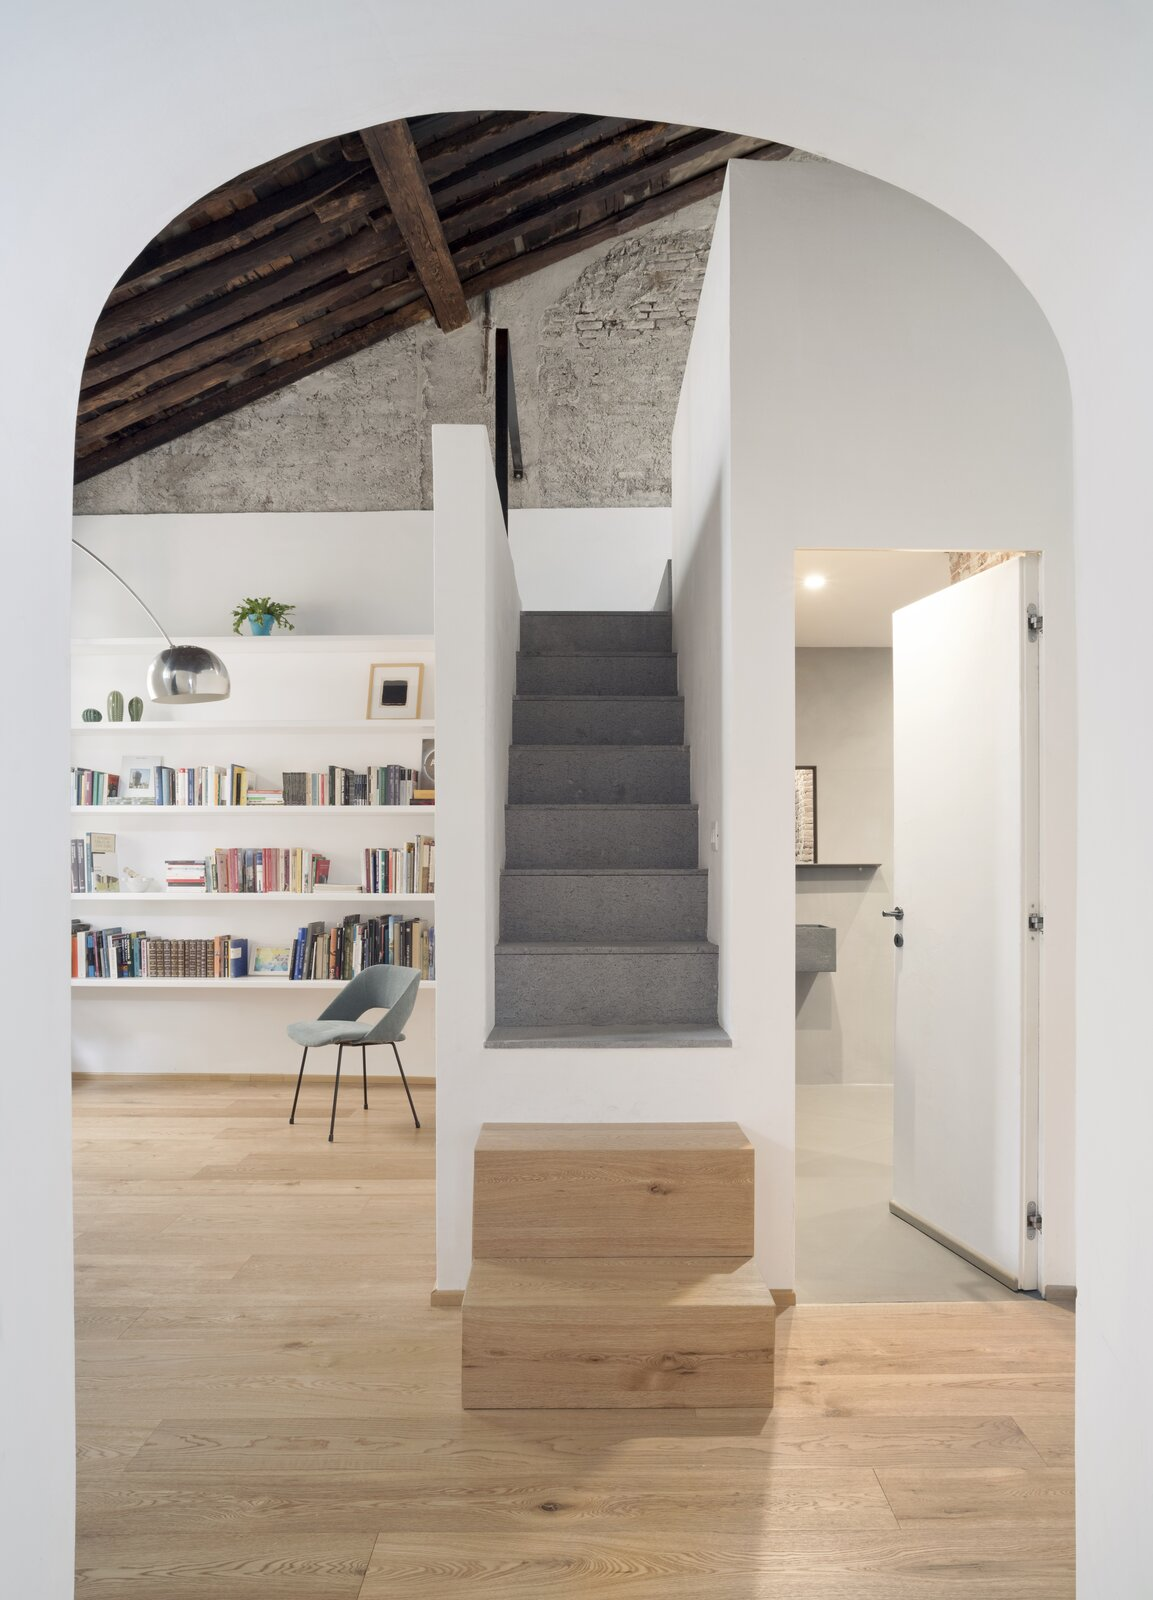 House for a Sea Dog staircase